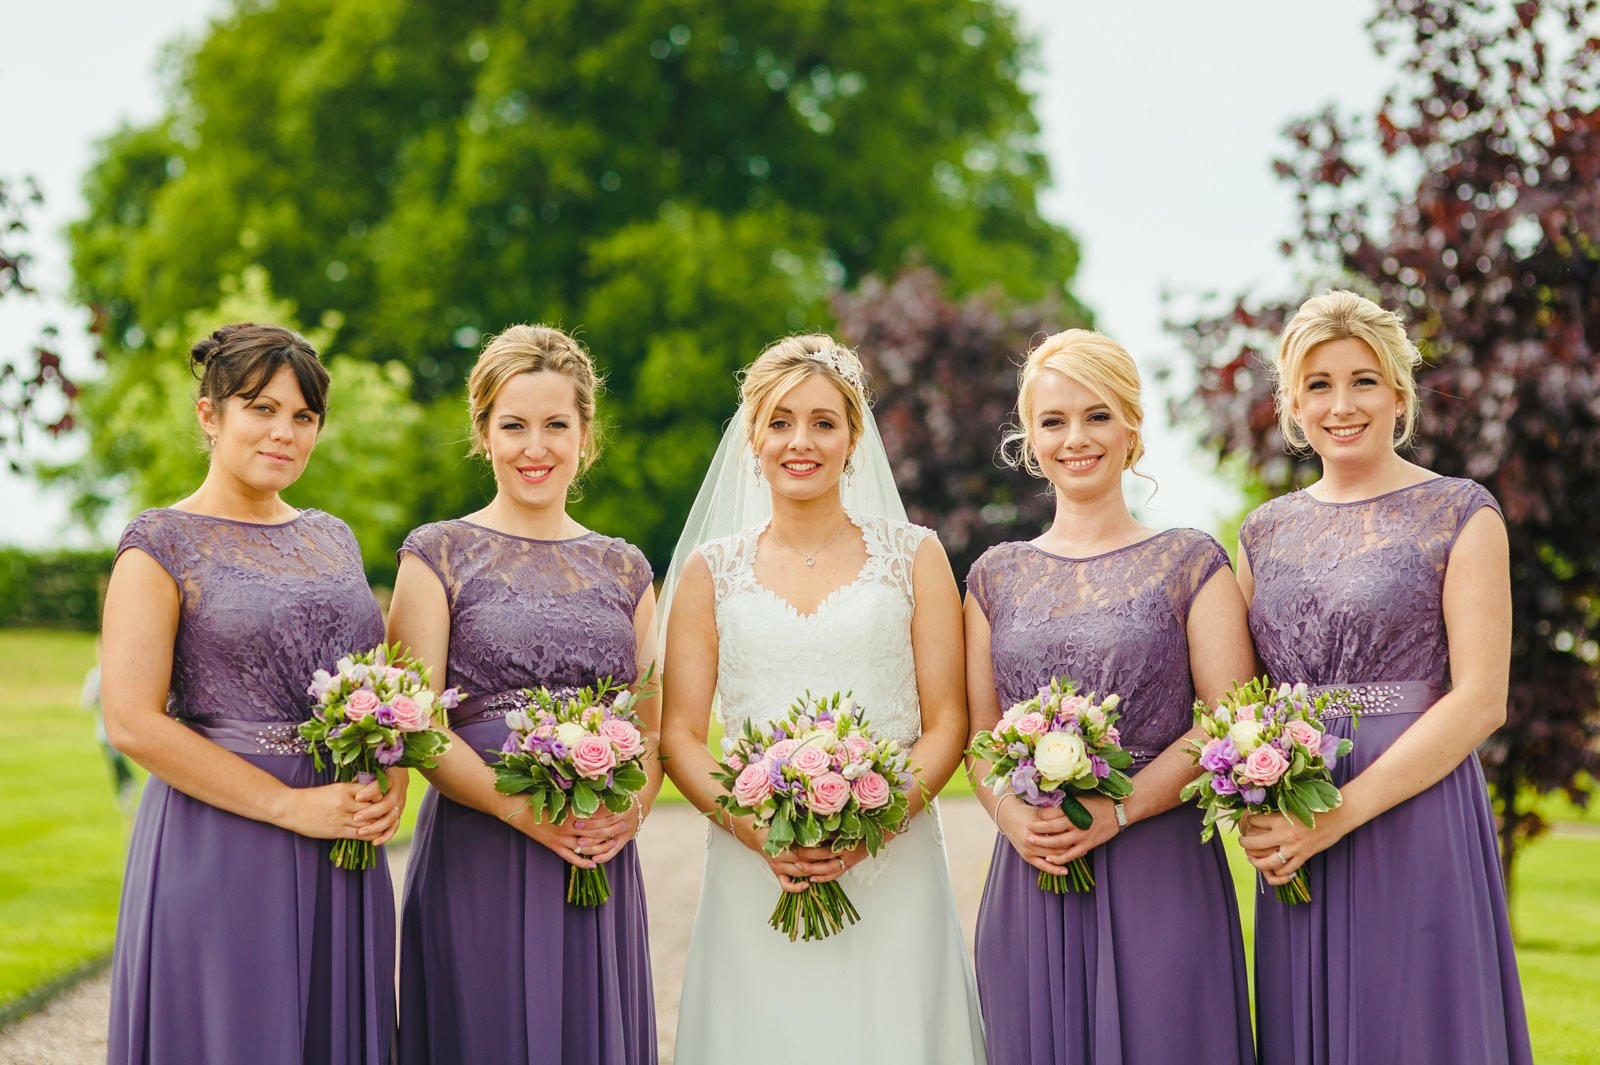 millers of netley wedding 66 - Millers Of Netley wedding, Dorrington, Shrewsbury | Emma + Ben